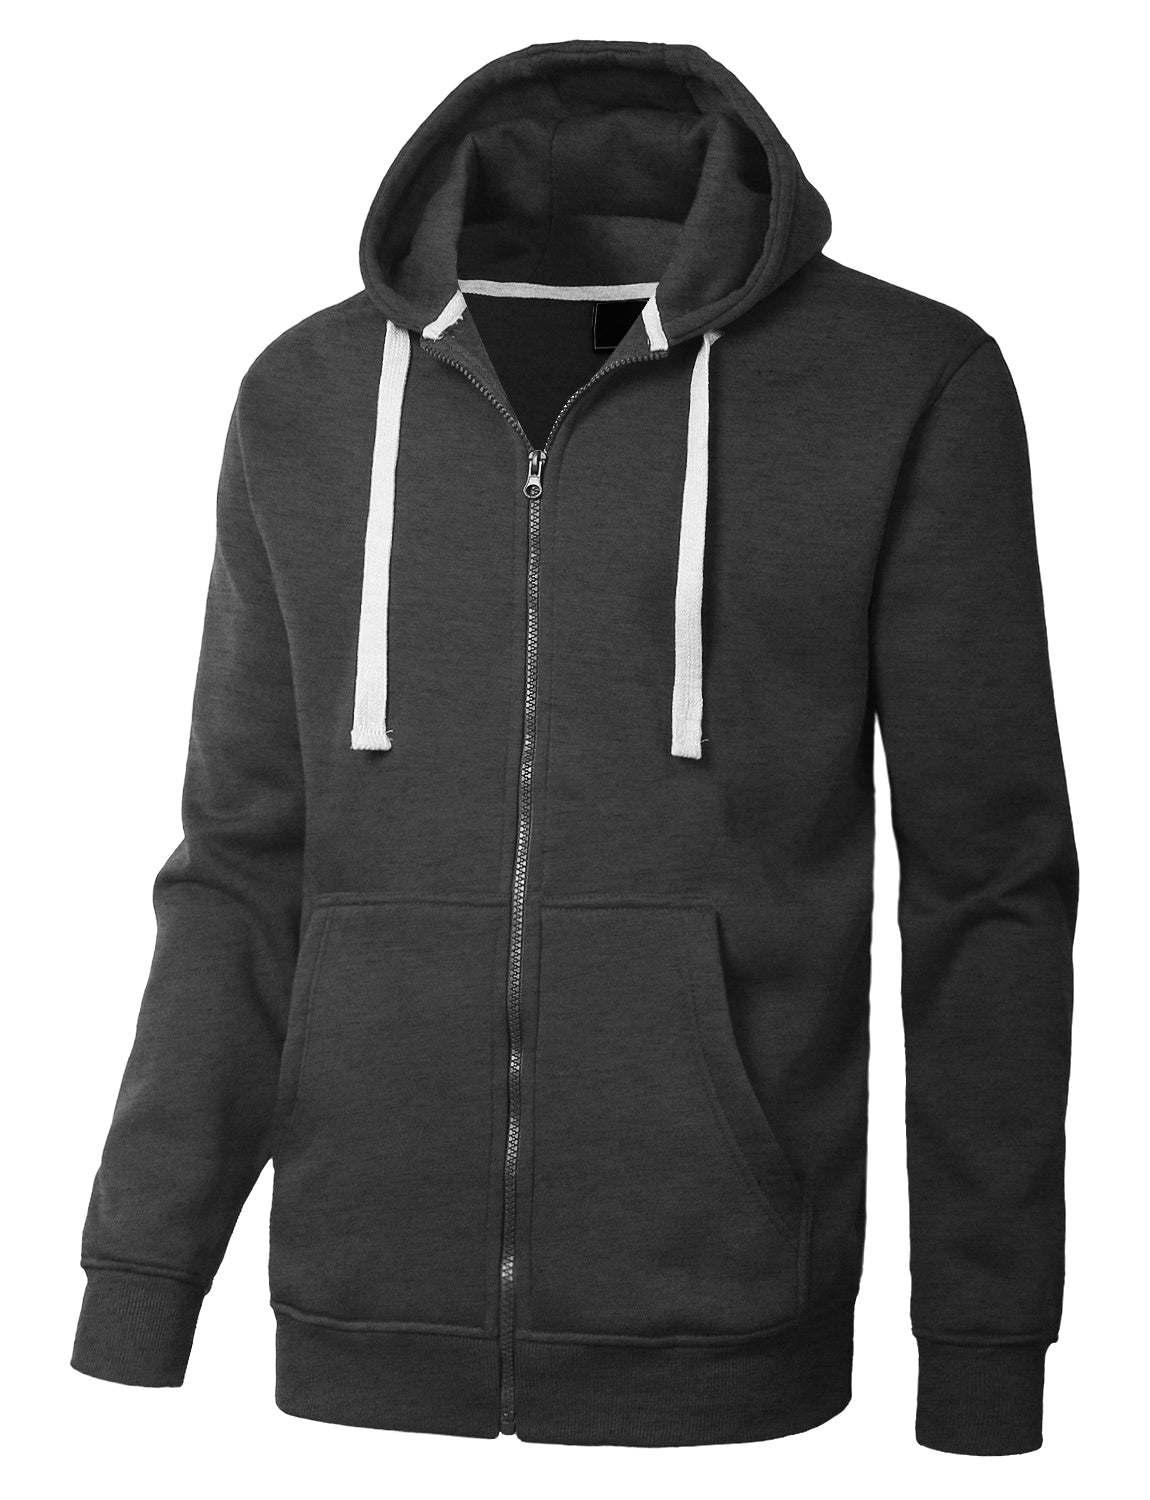 CHARCOAL Basic Zip-Up Fleece Hoodie Jacket - URBANCREWS